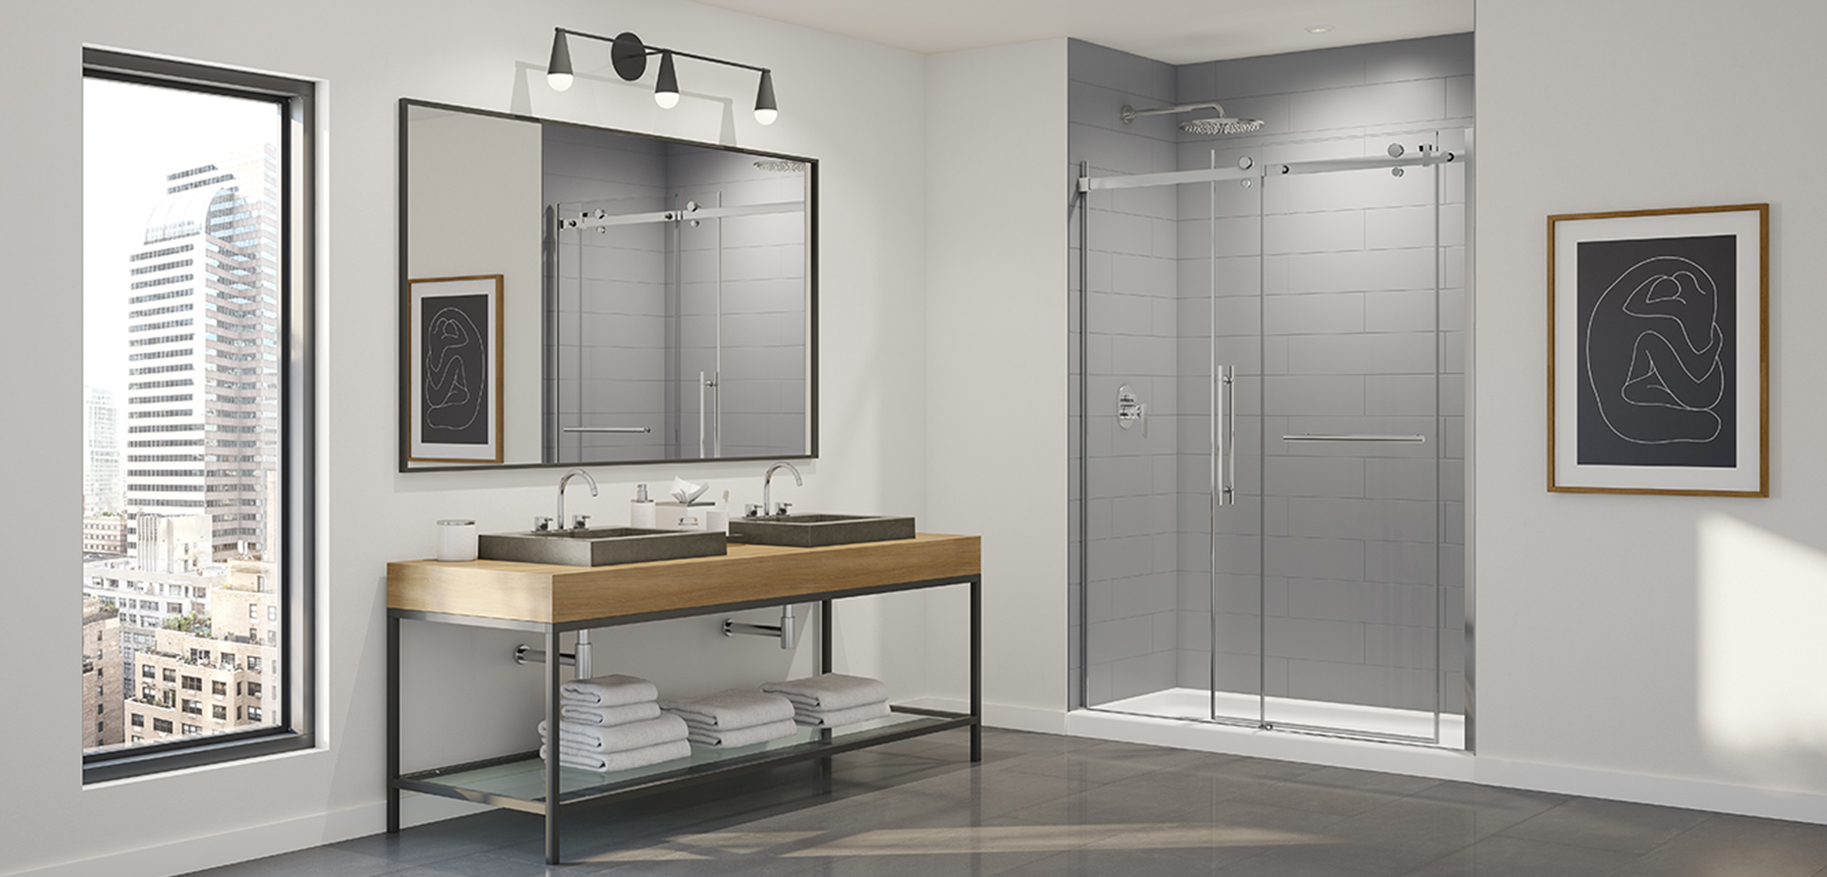 New Shower Wall Solutions